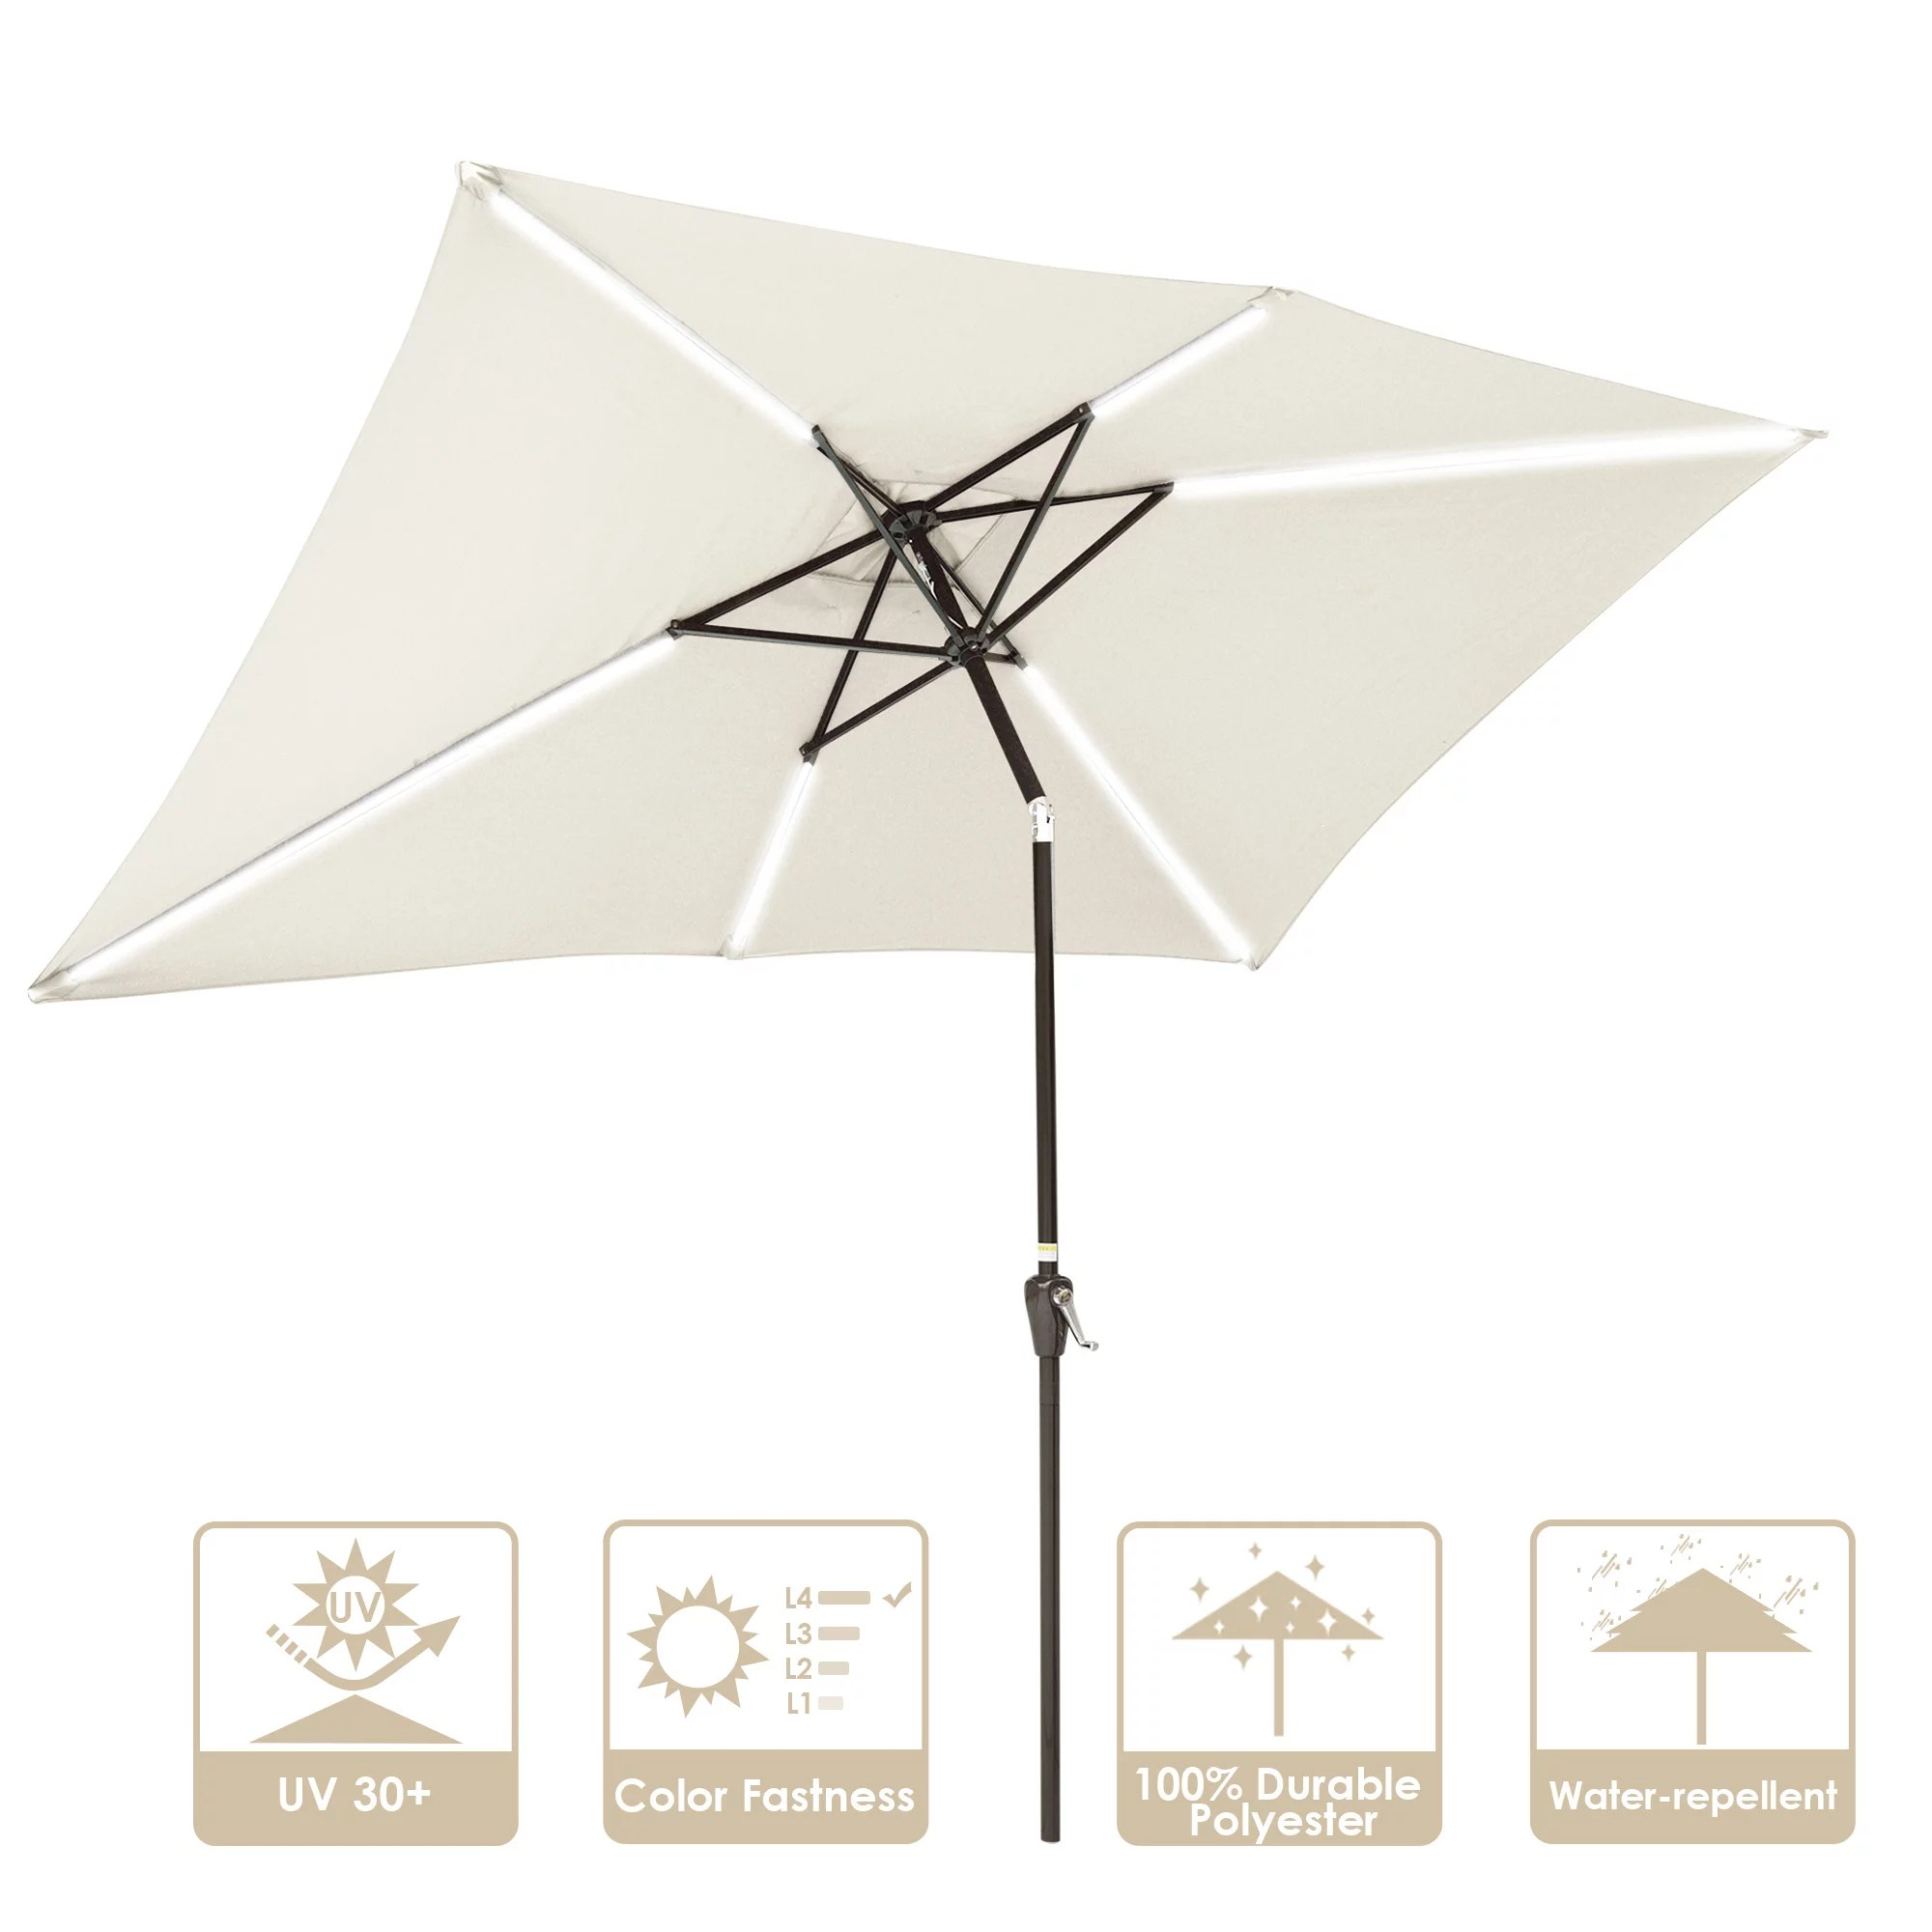 yescom 10x6ft rectangle solar led lighted patio umbrella with tilt and crank outdoor market table umbrella sunshade